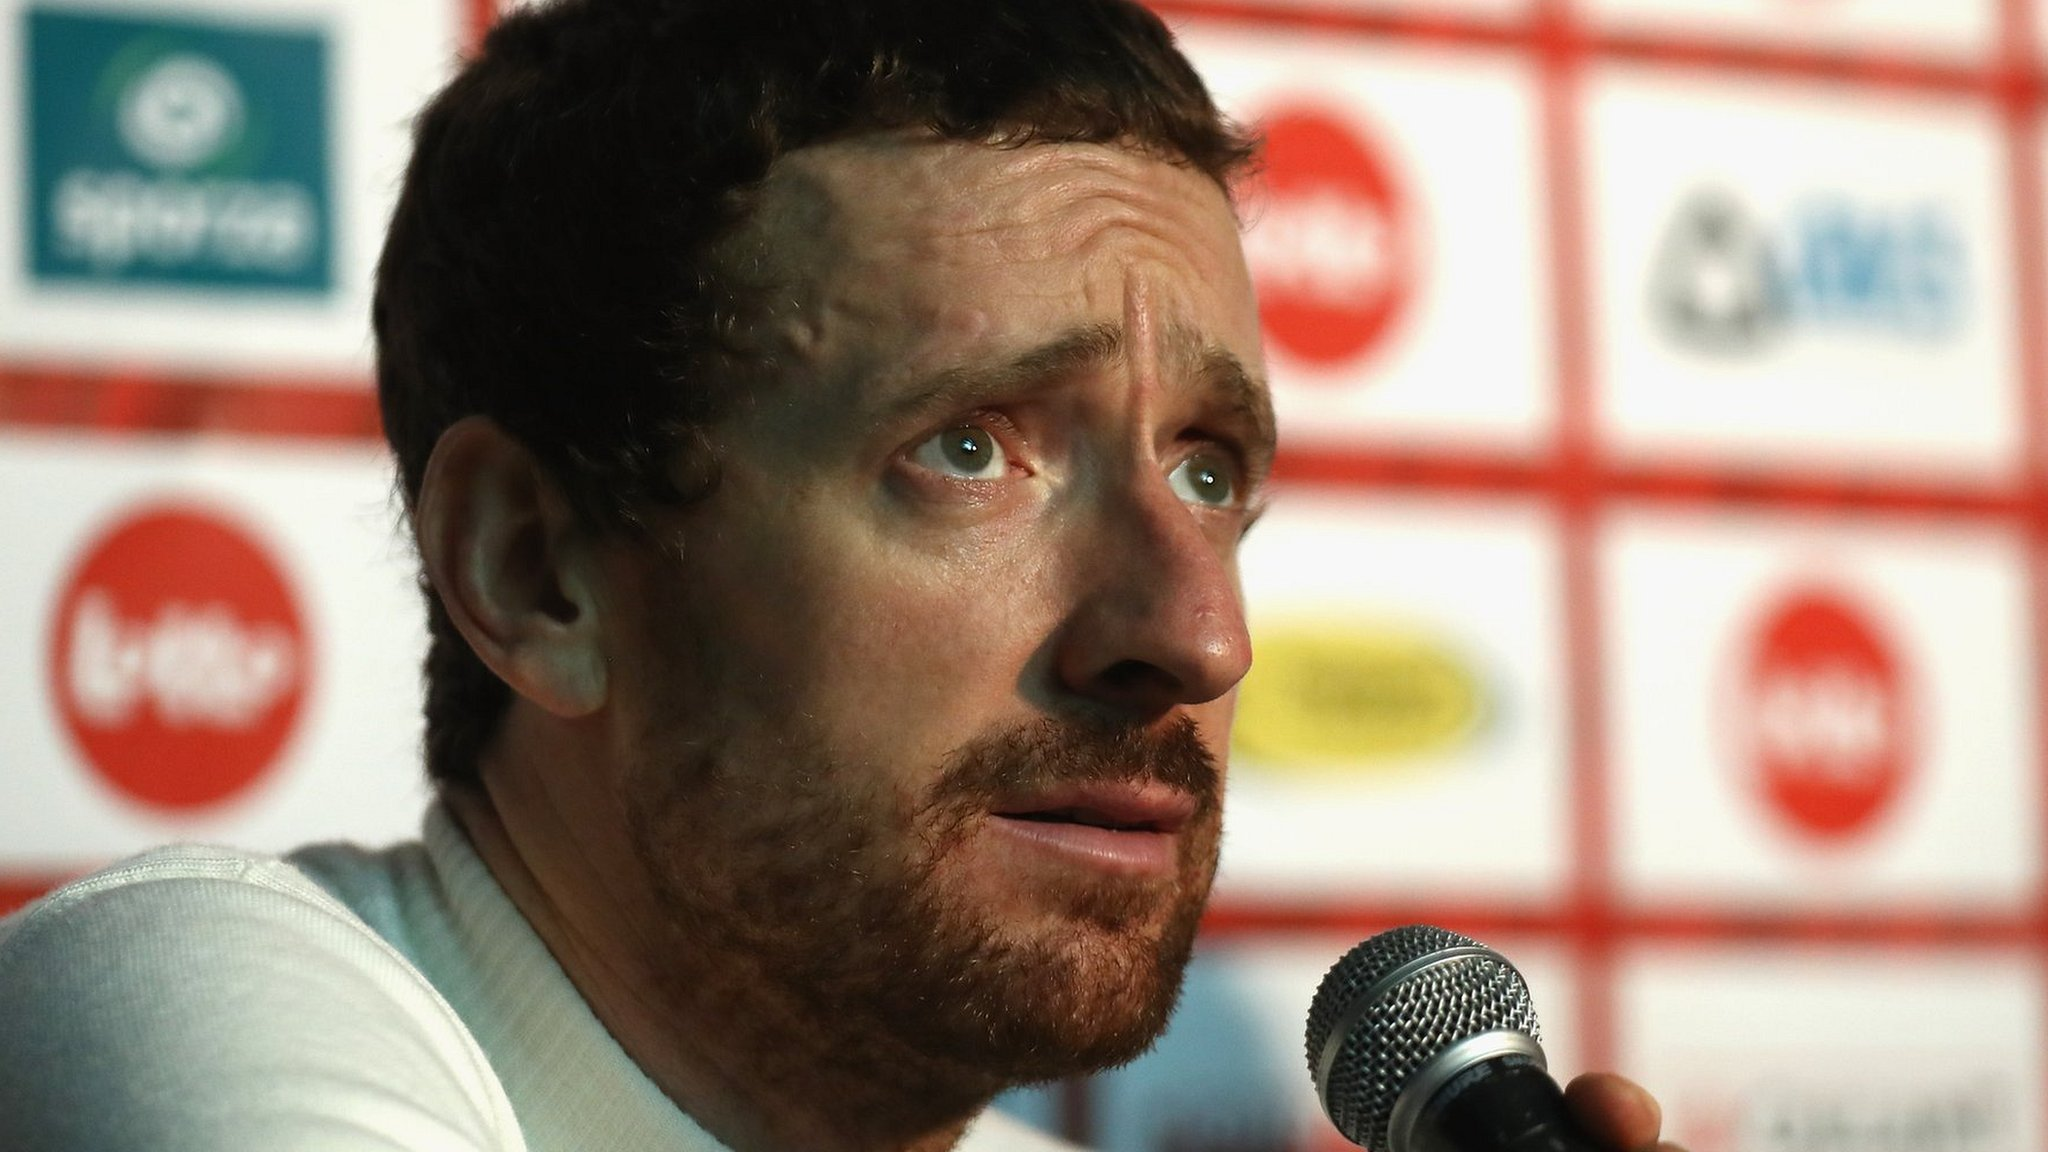 Bradley Wiggins says he has discovered 'sinister and shocking' details about 'jiffy-bag' controversy